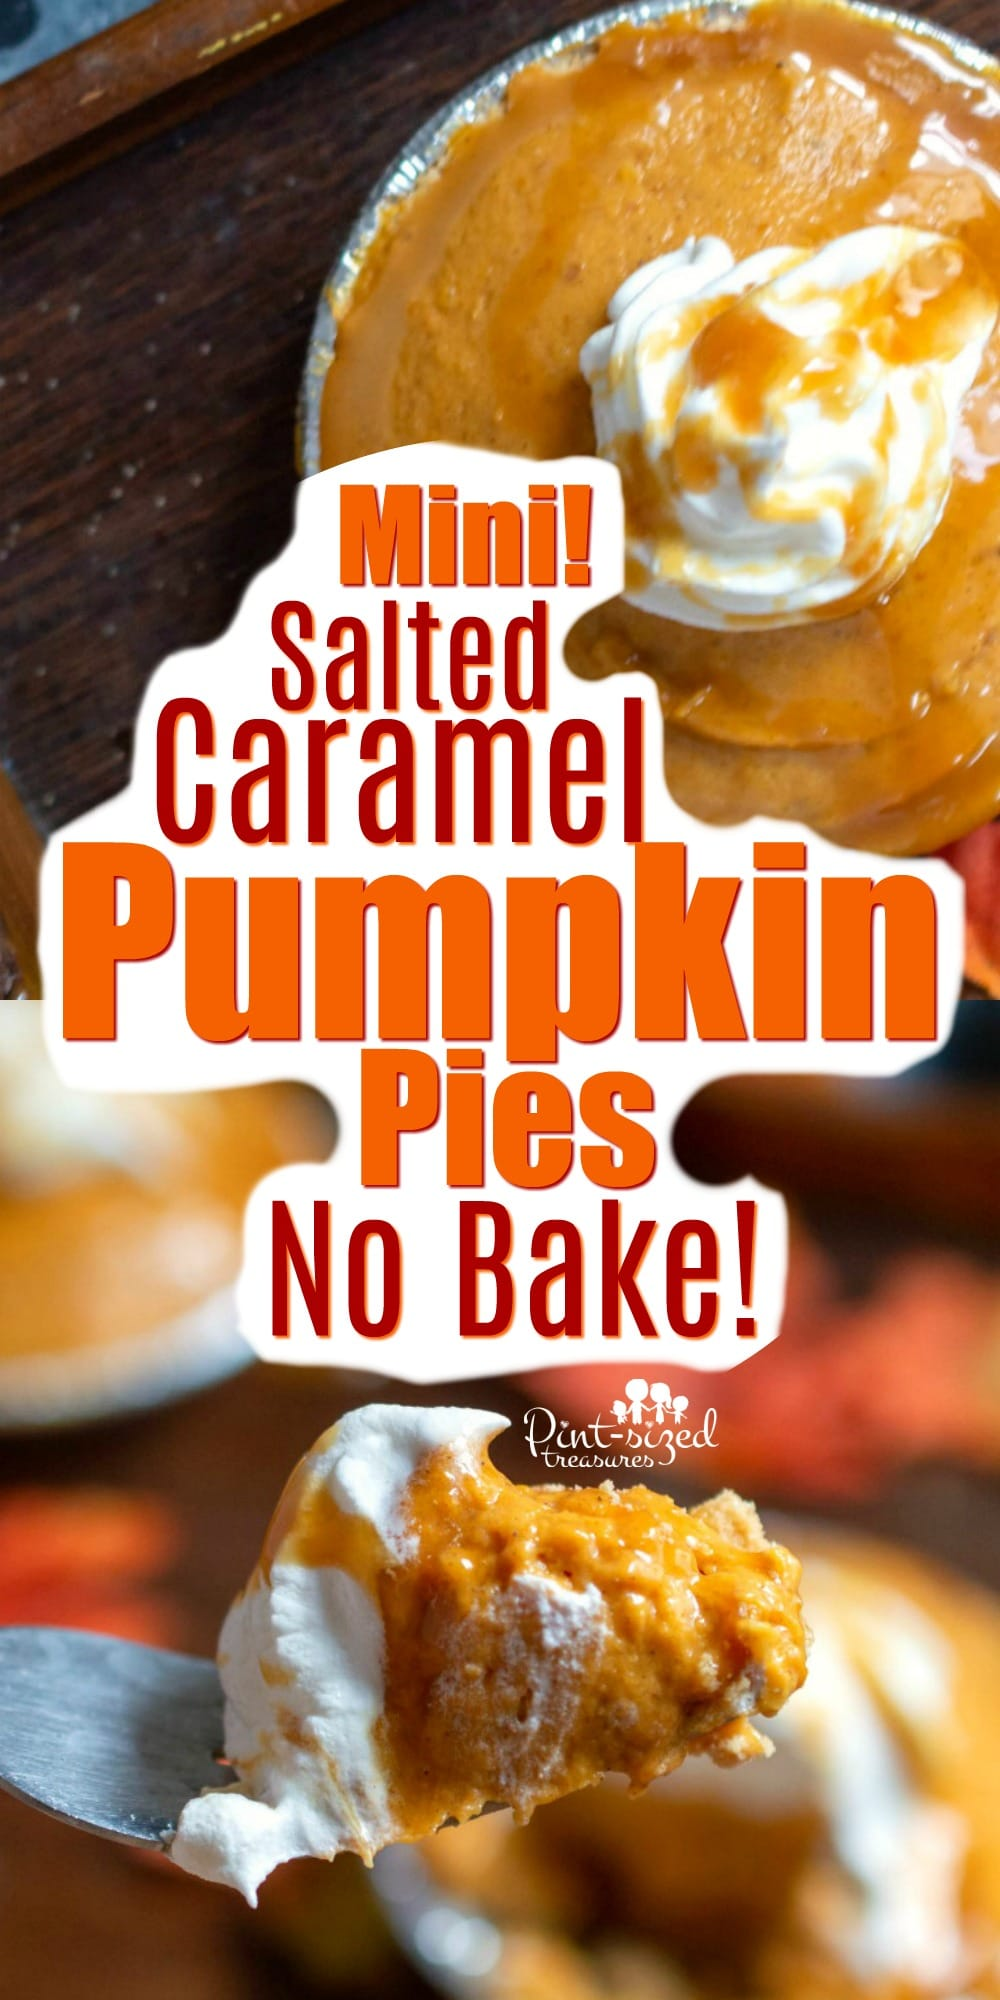 Mini Salted Caramel Pumpkin Pies recipe